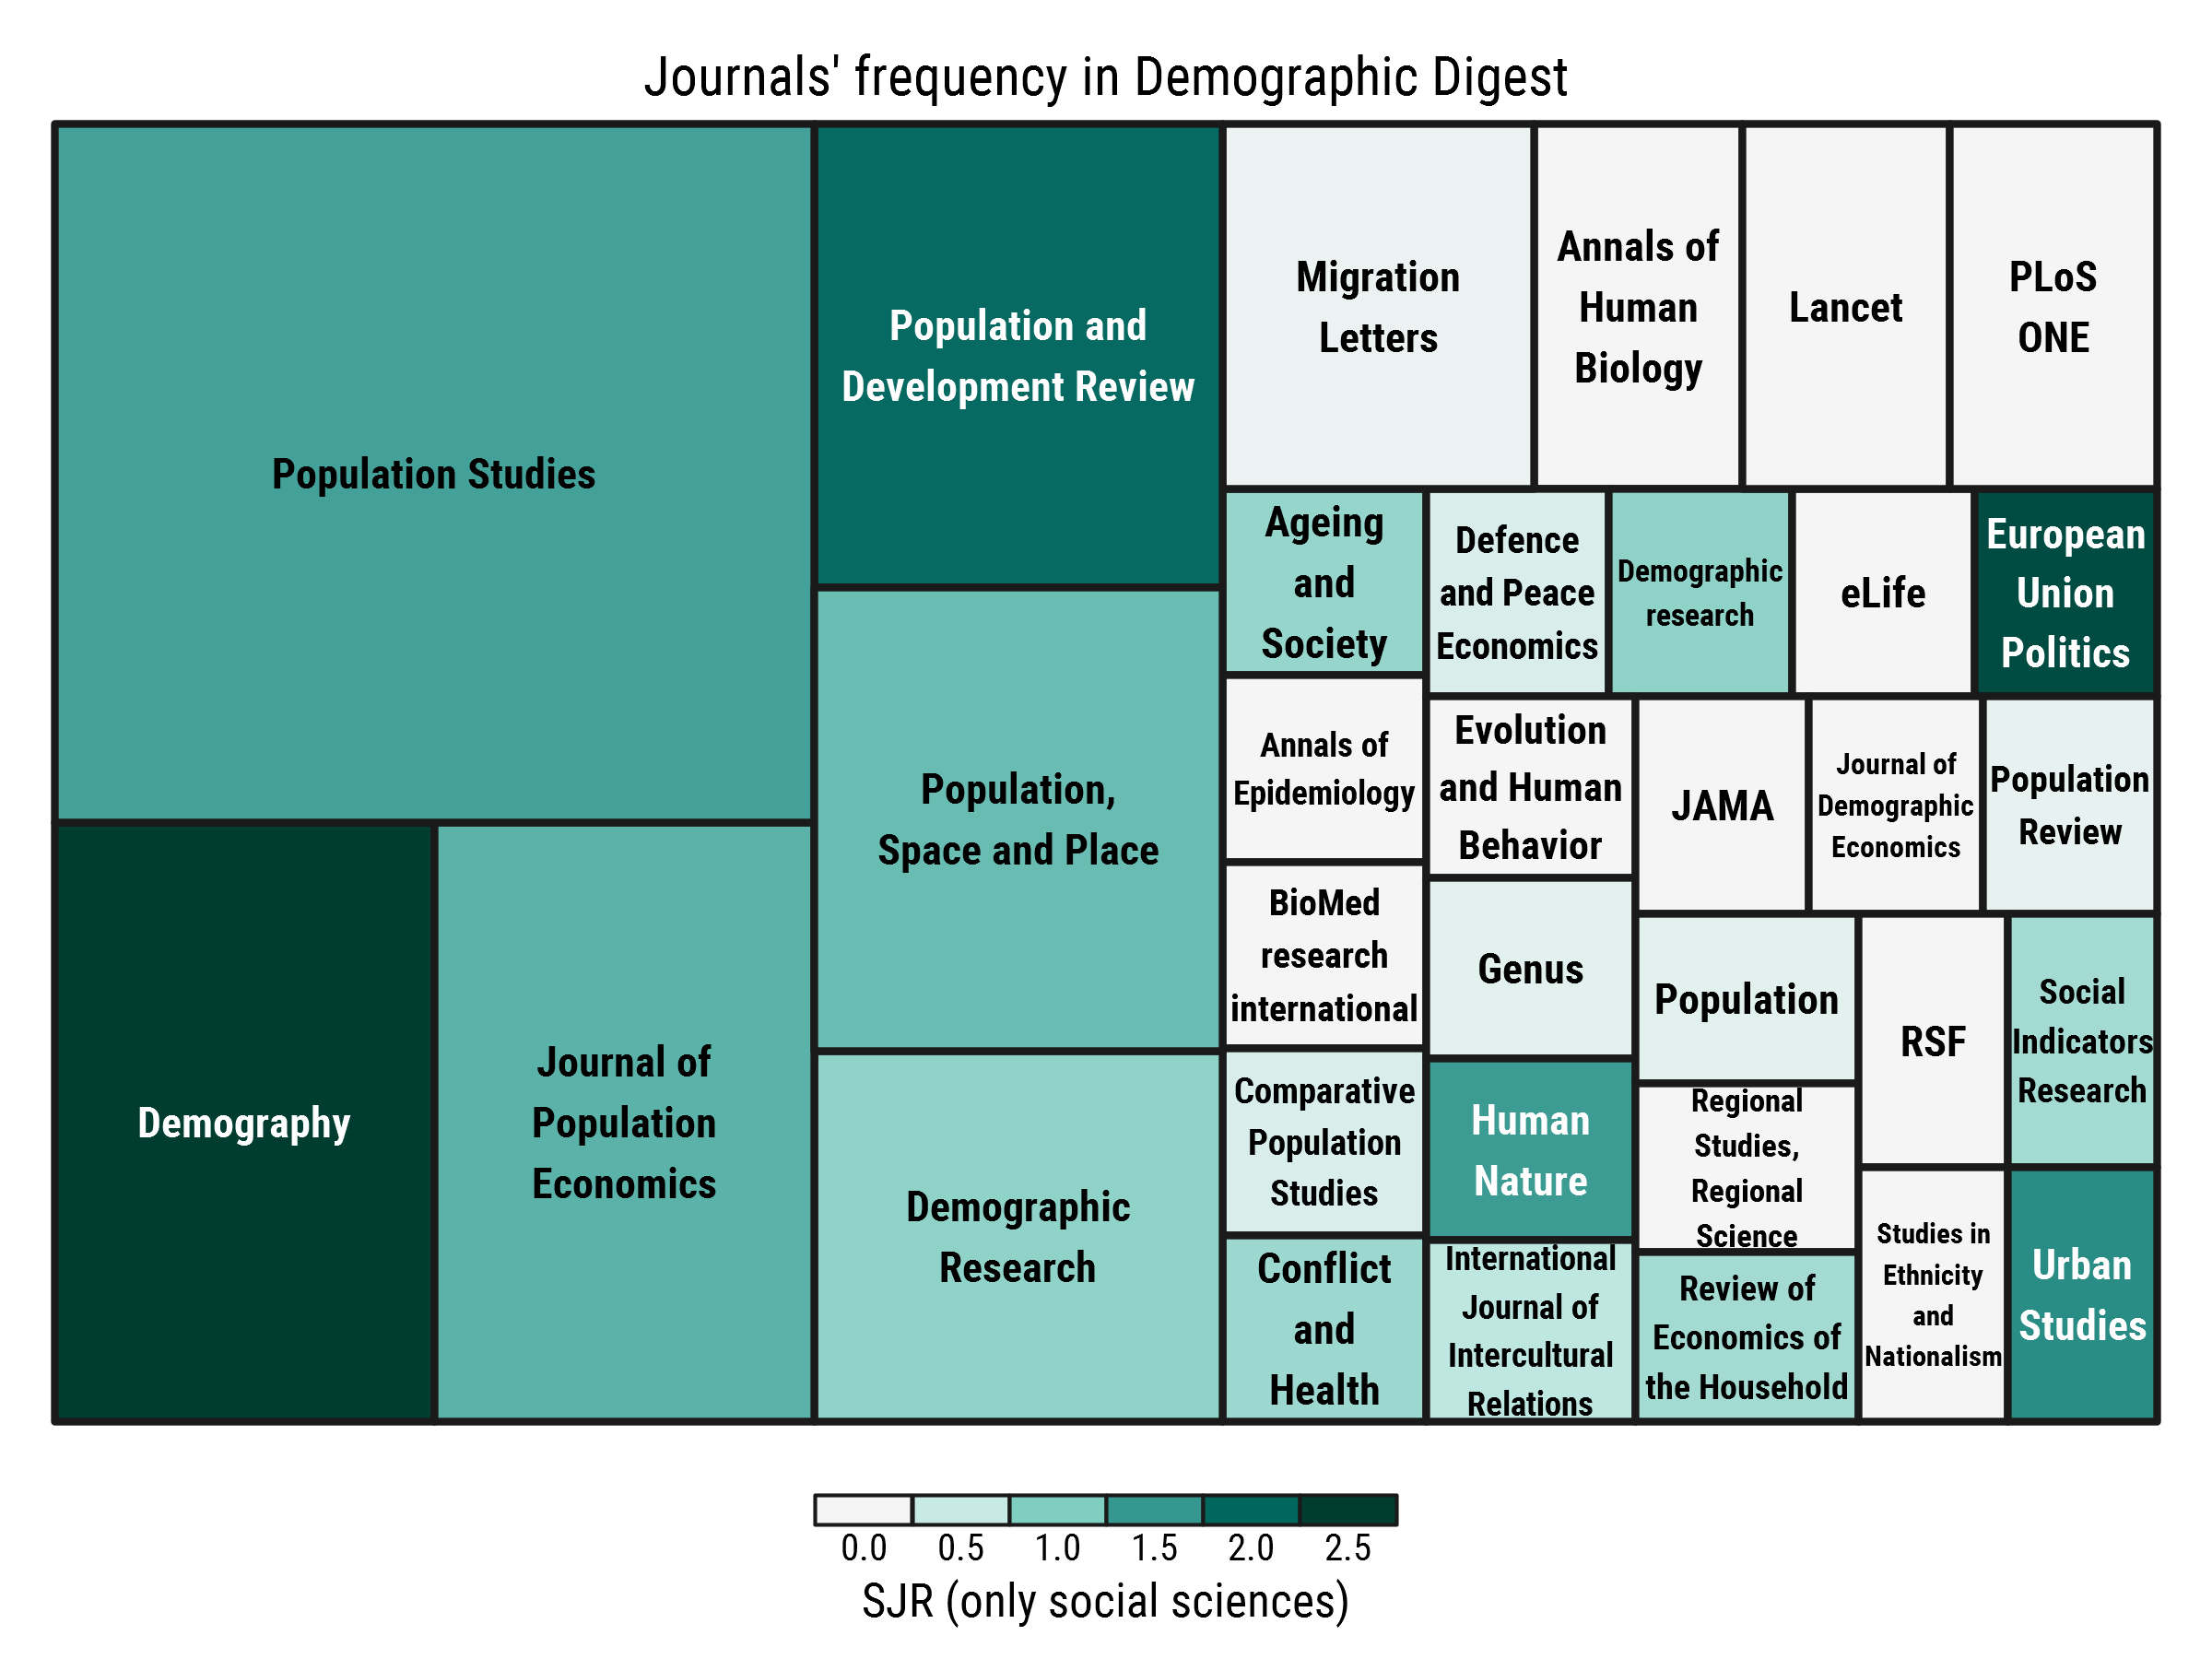 30 issues of Demographic Digest – the most frequent journals